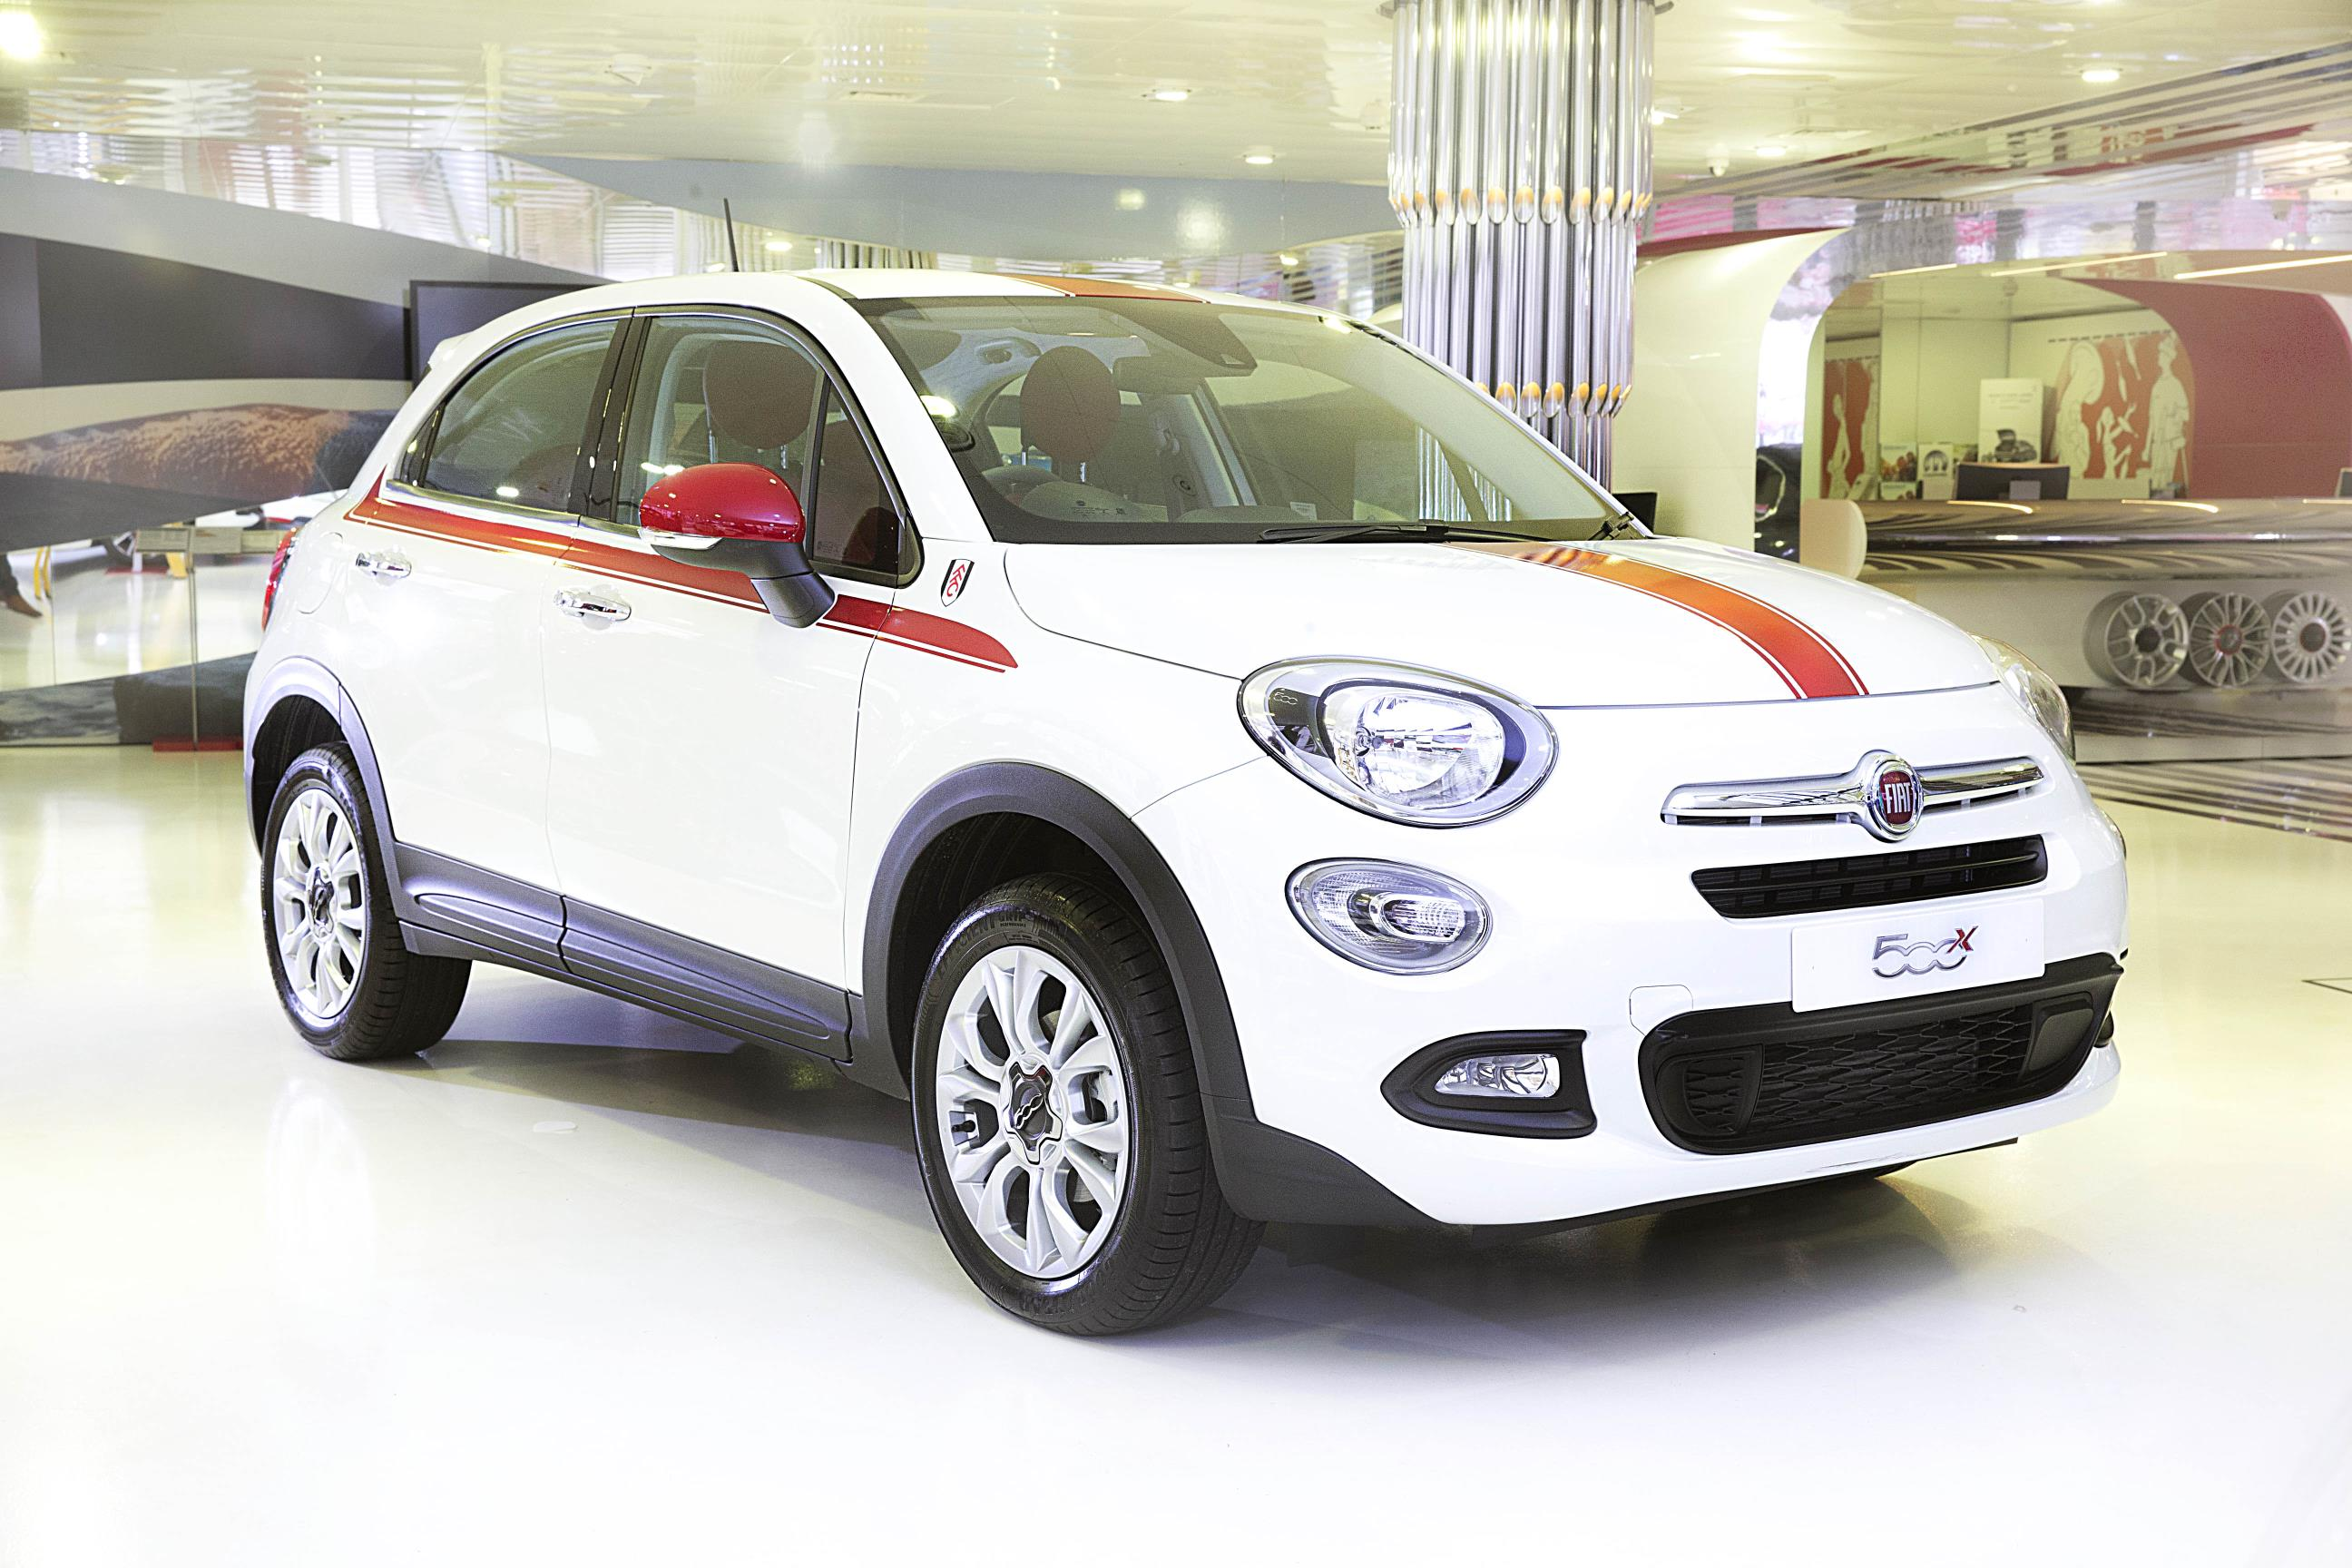 new limited edition fiat 500x fulham fc special edition announced. Black Bedroom Furniture Sets. Home Design Ideas